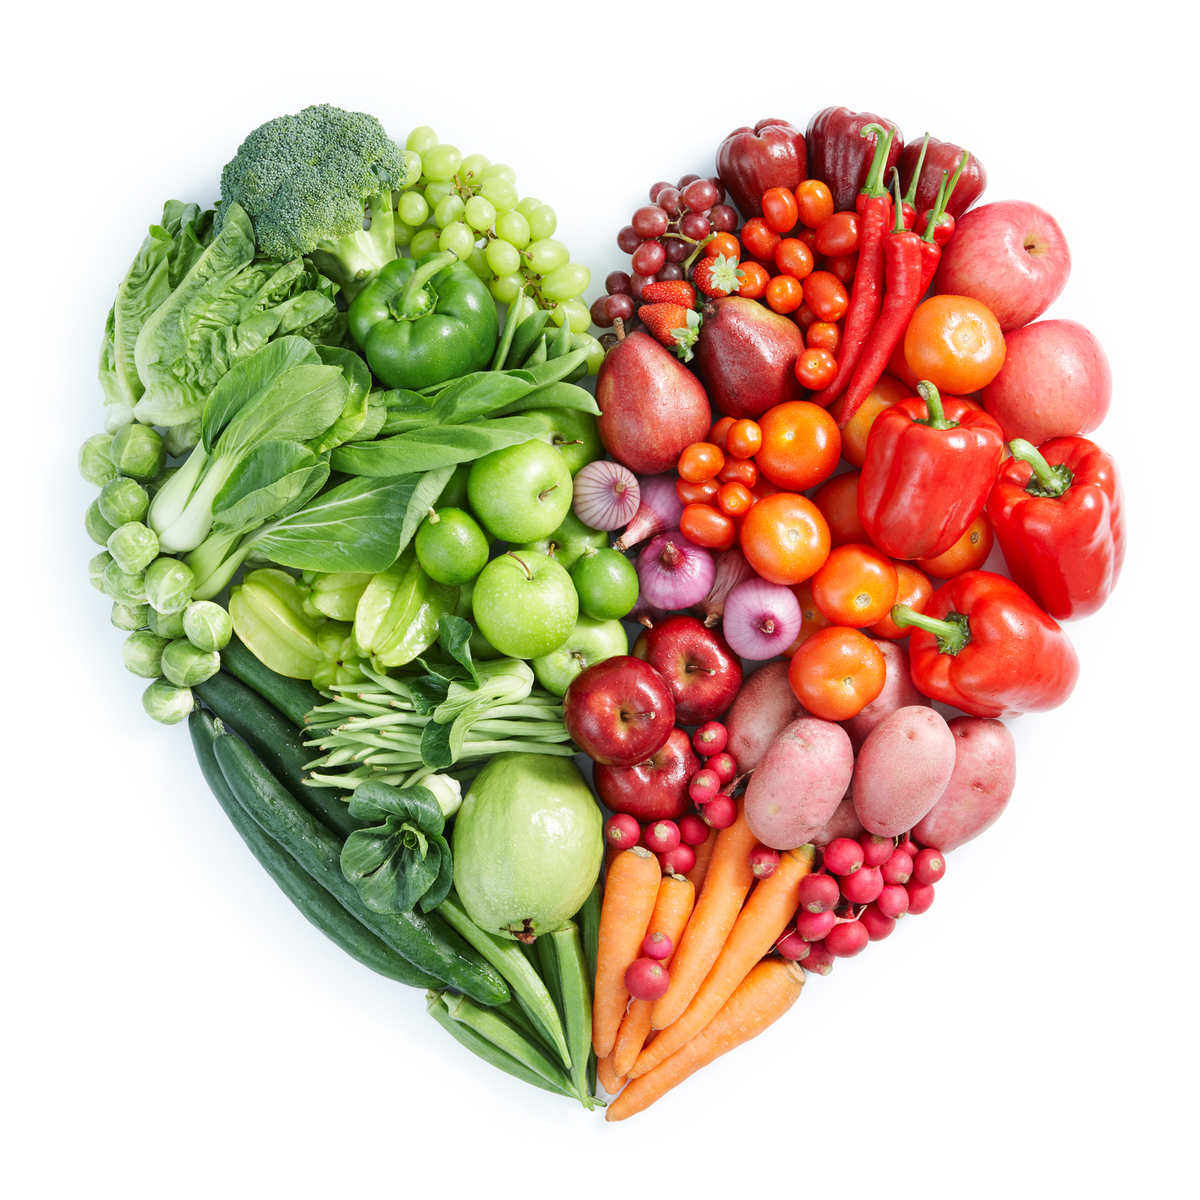 Fruits and vegetables in a heart shape.